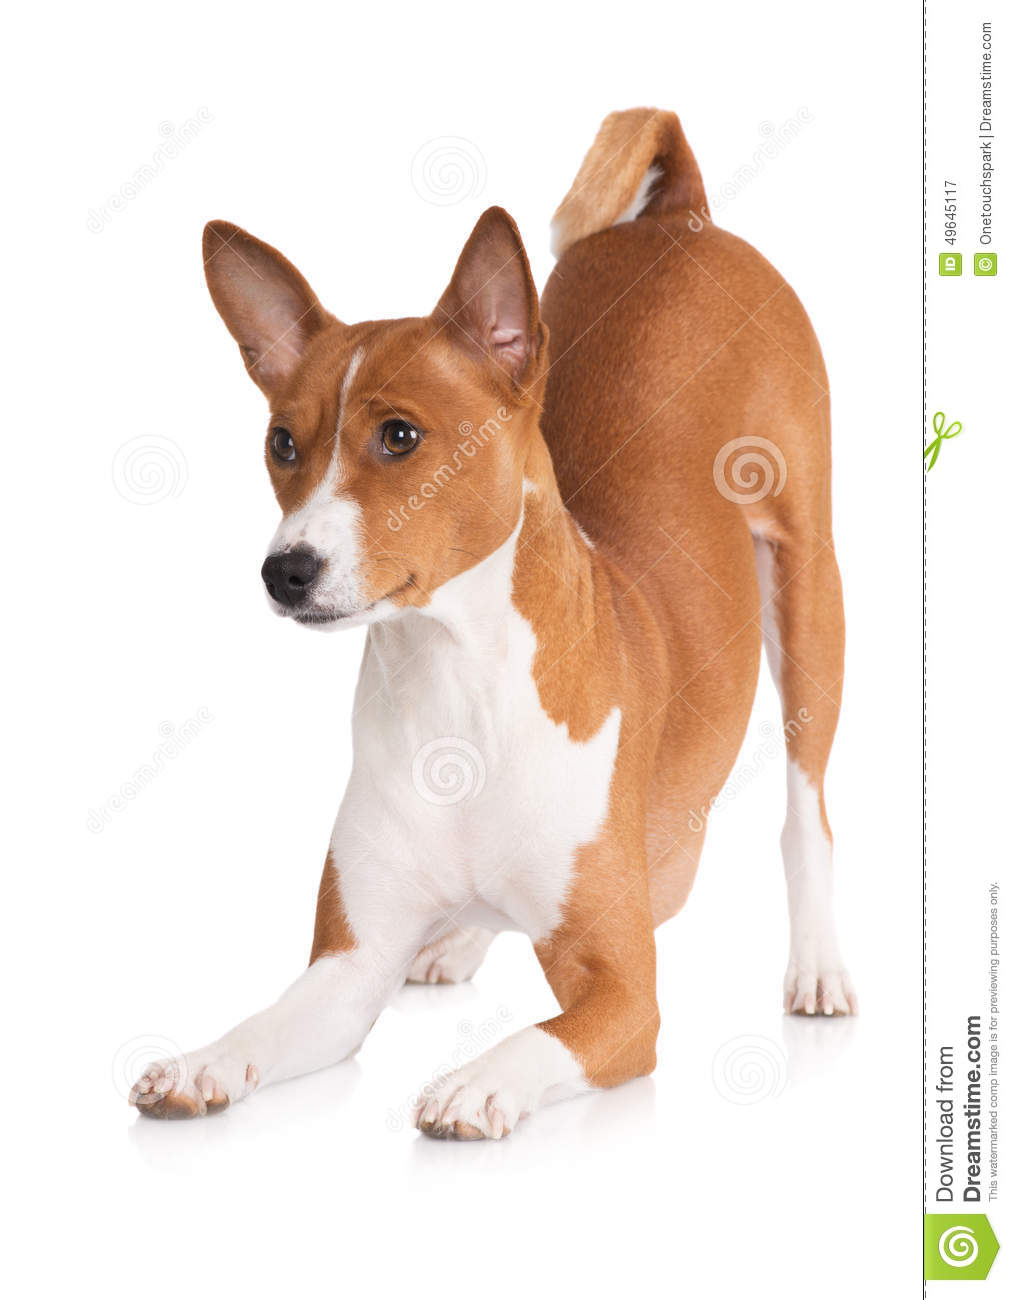 Basenji clipart #6, Download drawings